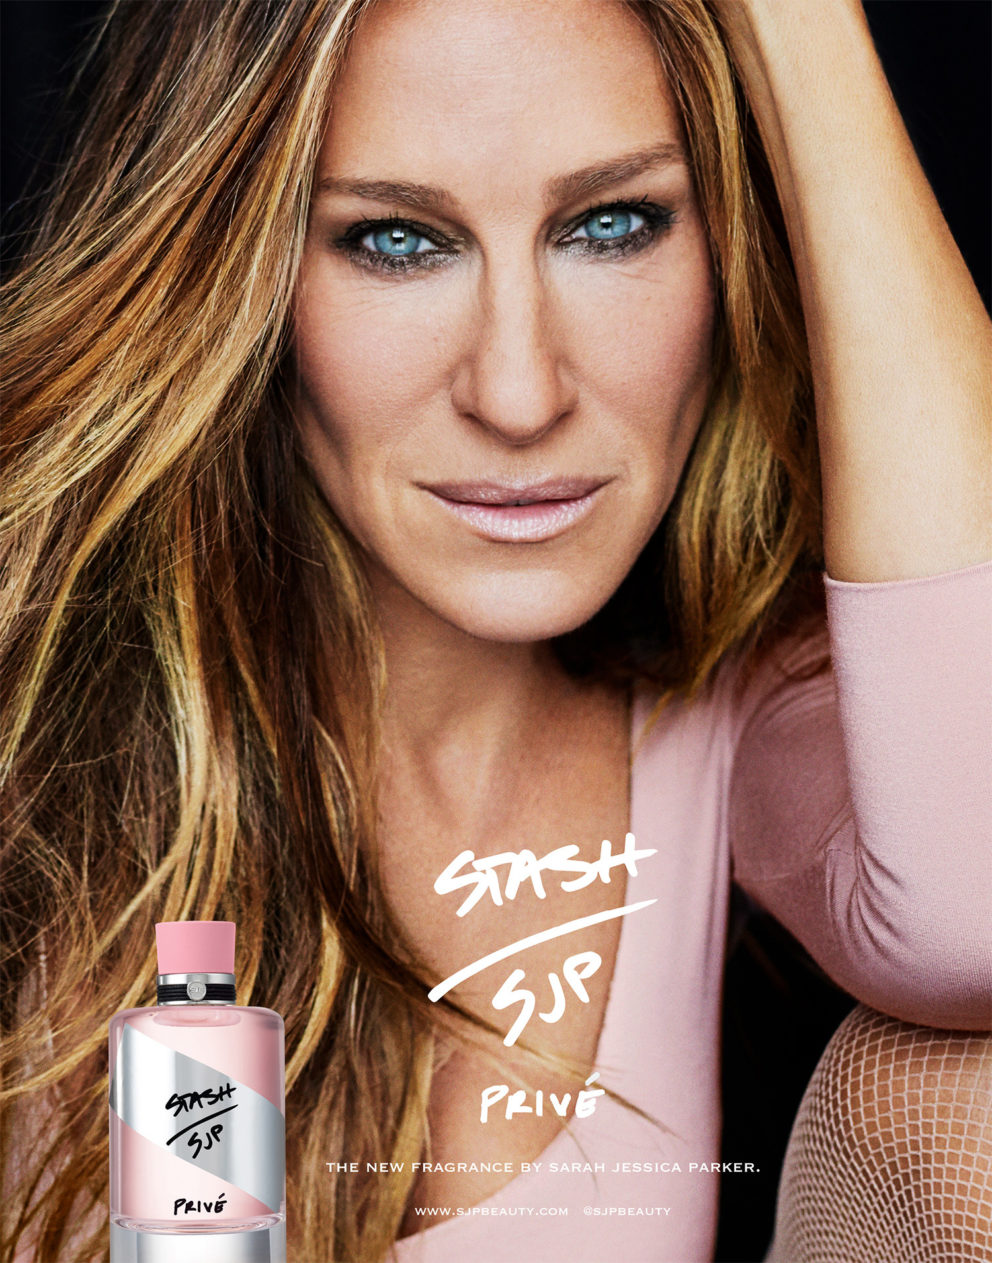 150916 Lovely Stash Prive Fragrance Ad Sjp Christian Hogstedt